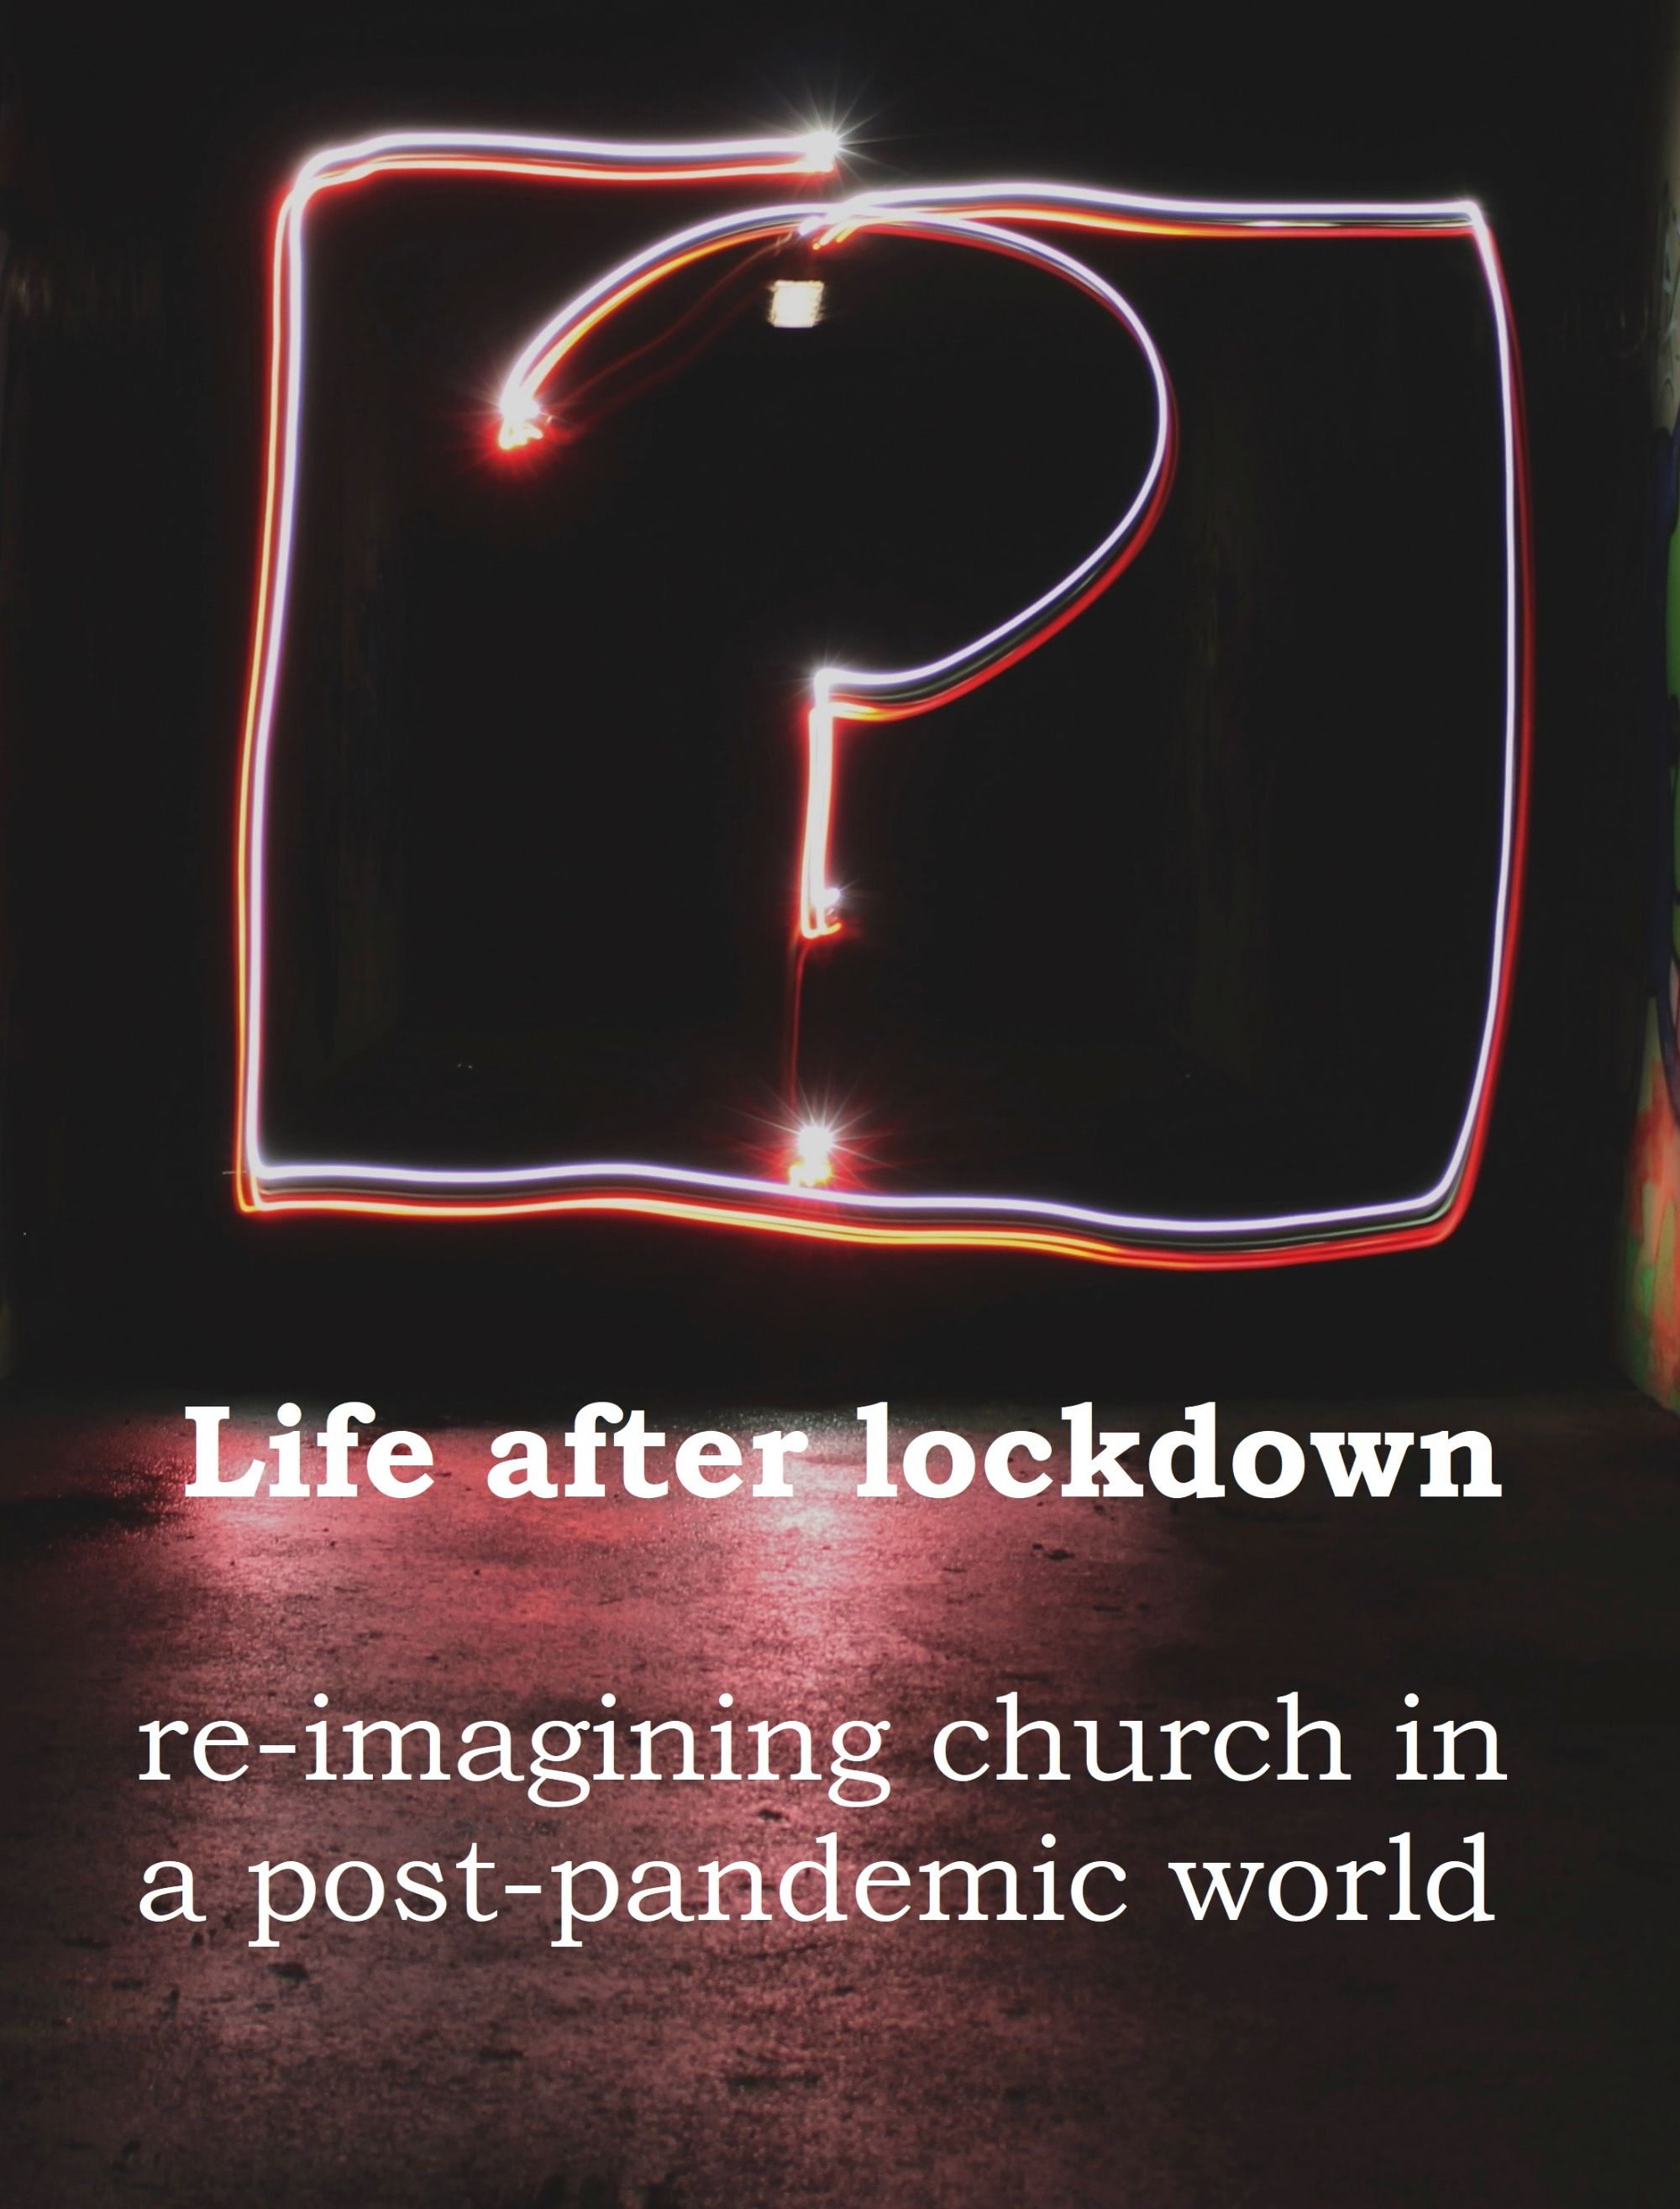 Flyer for life after lockdown